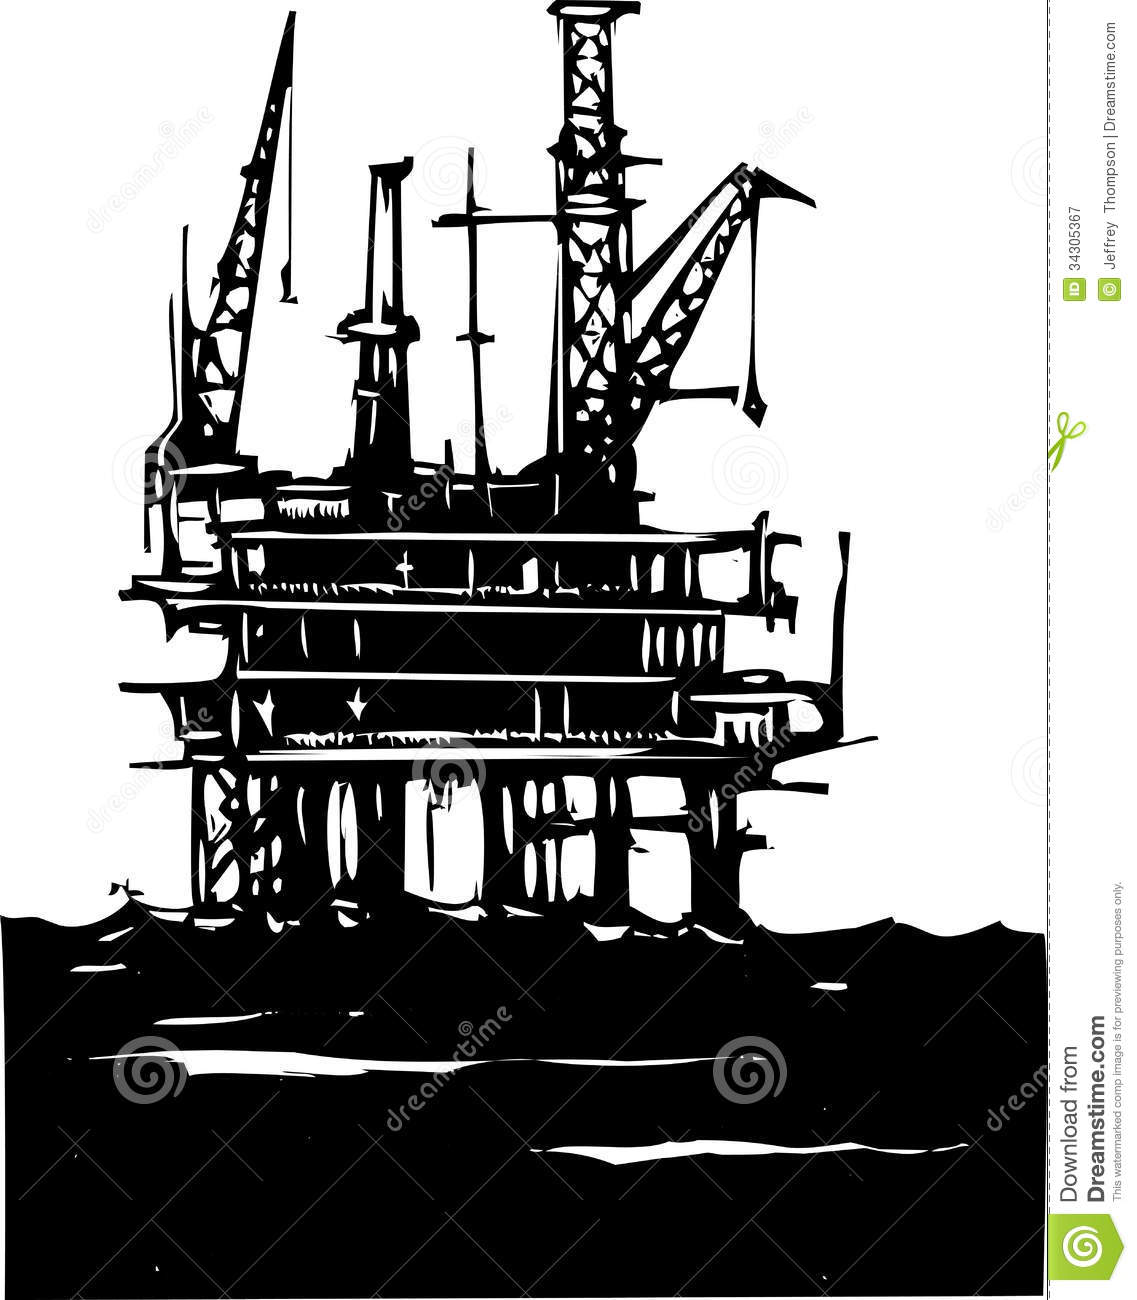 Drilling Rig Clipart.